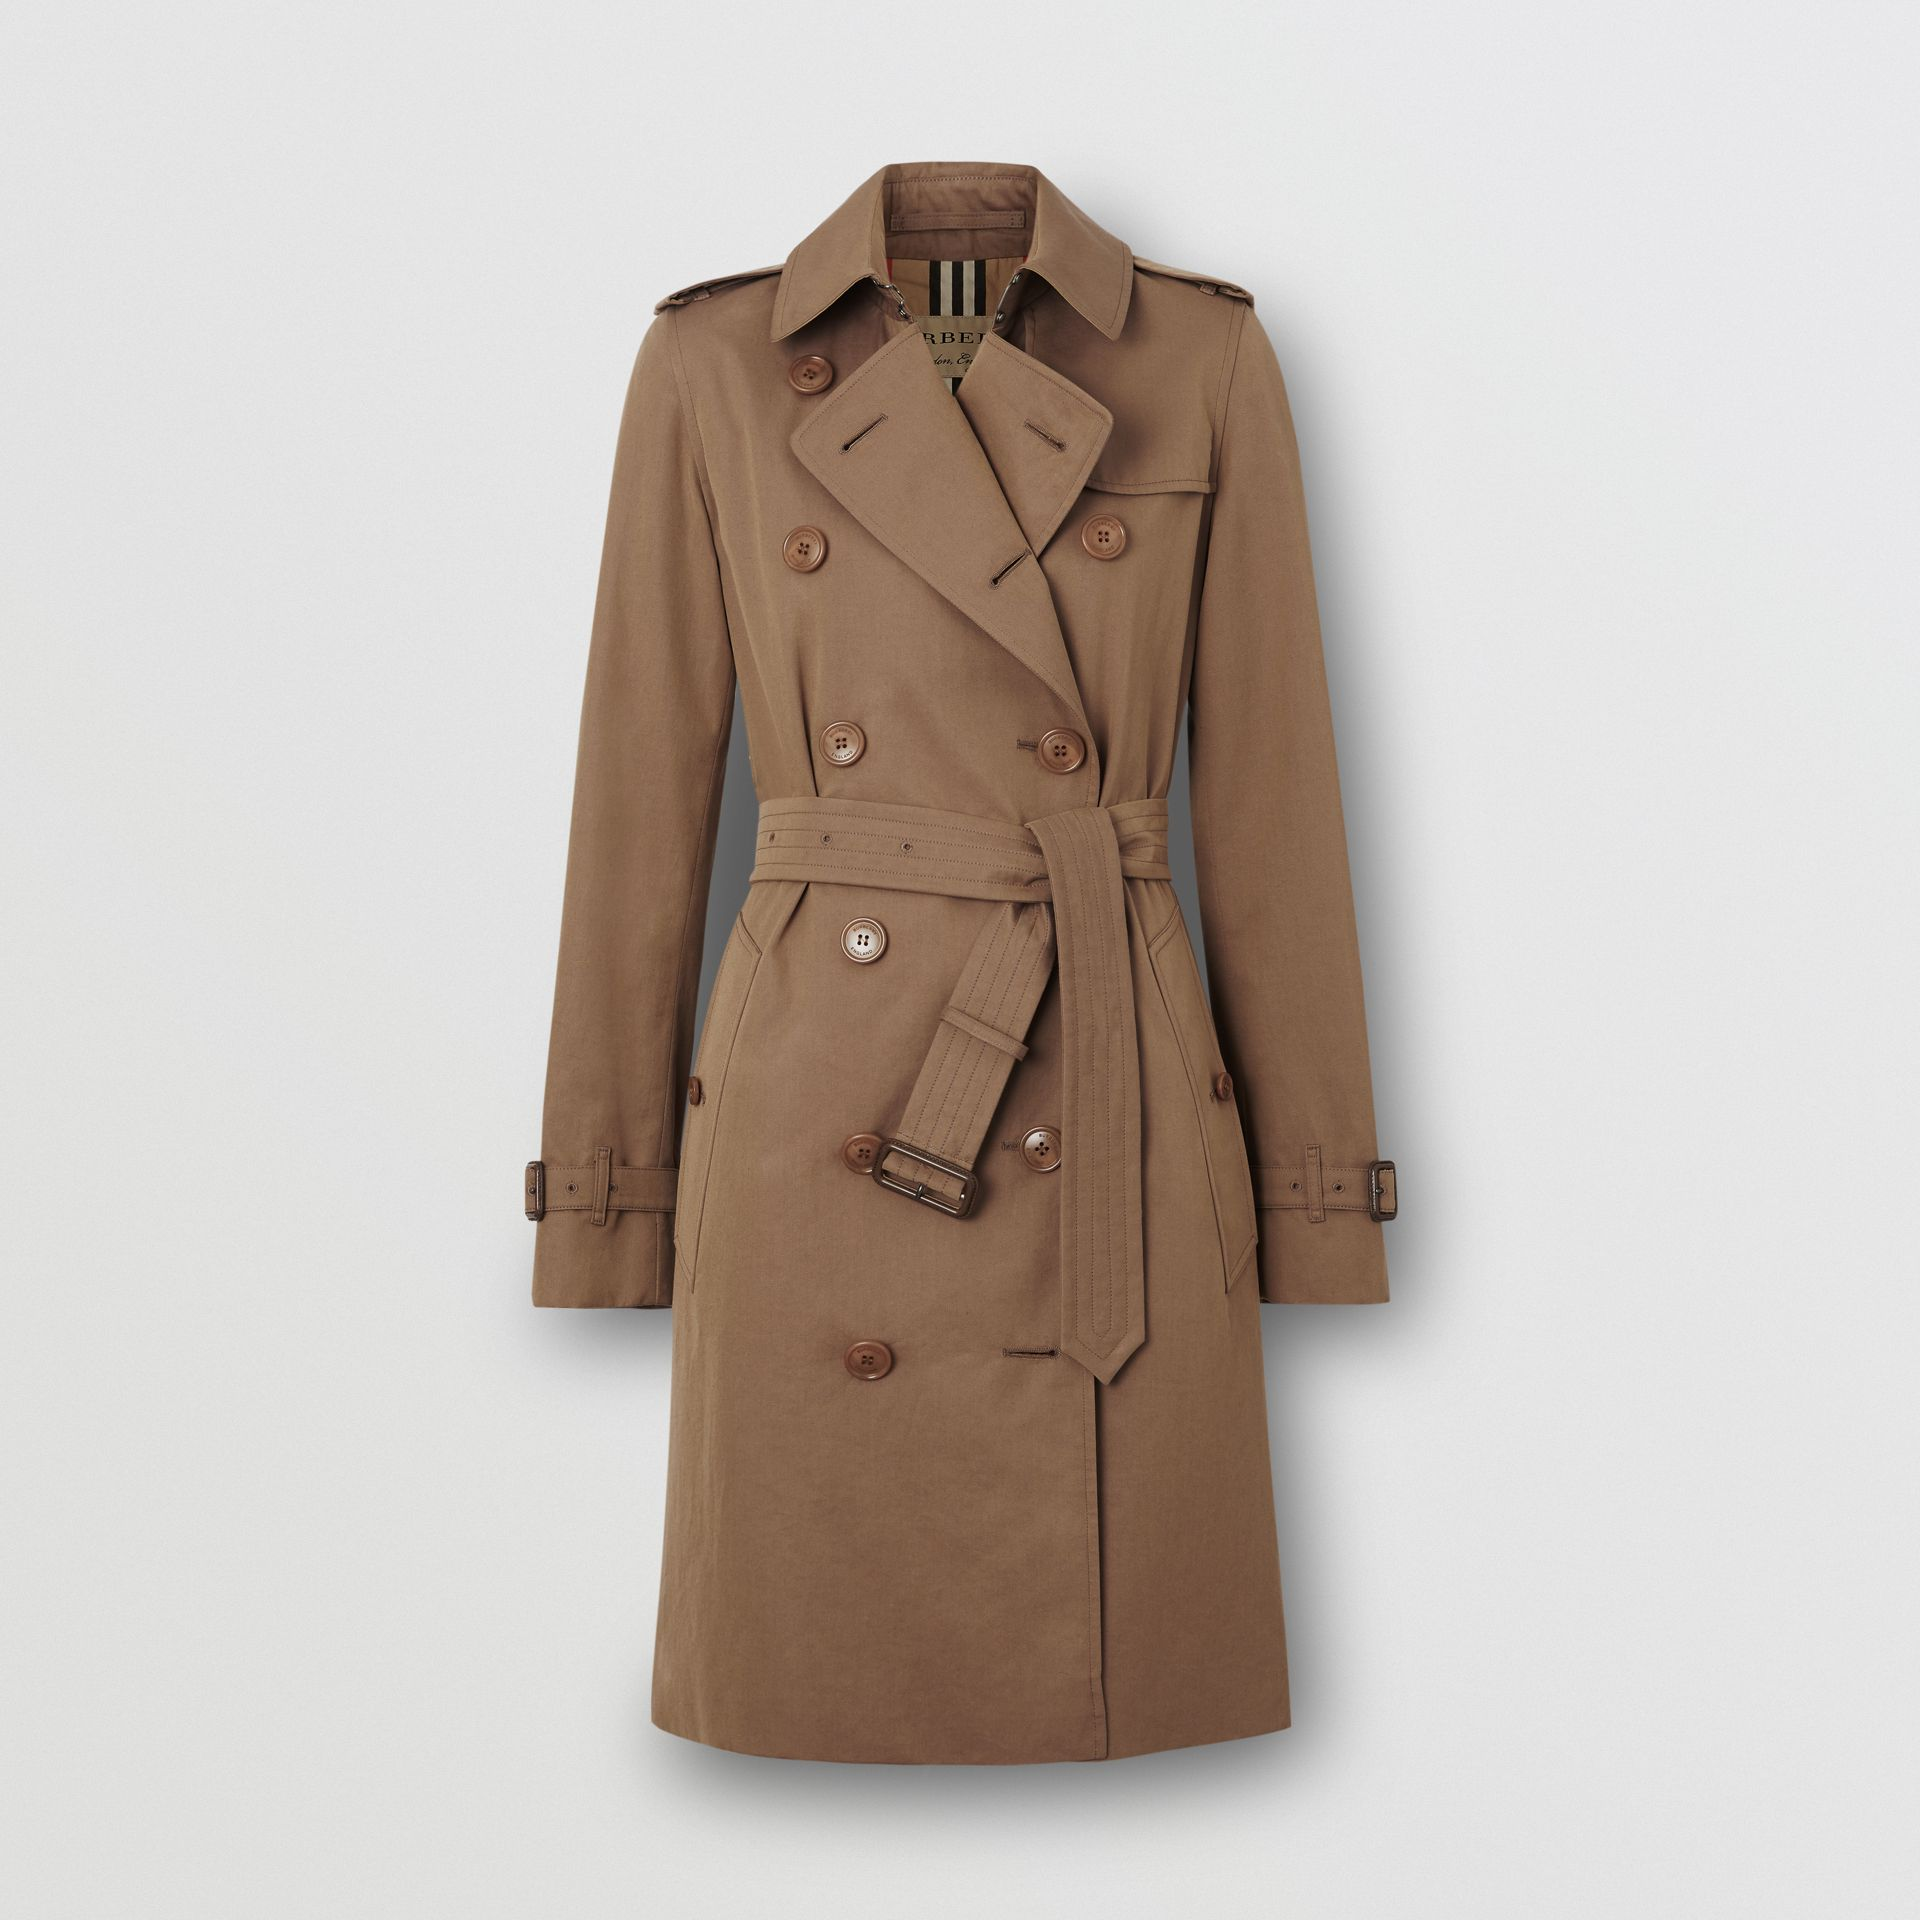 Tropical Gabardine Trench Coat in Taupe - Women | Burberry Australia - gallery image 3